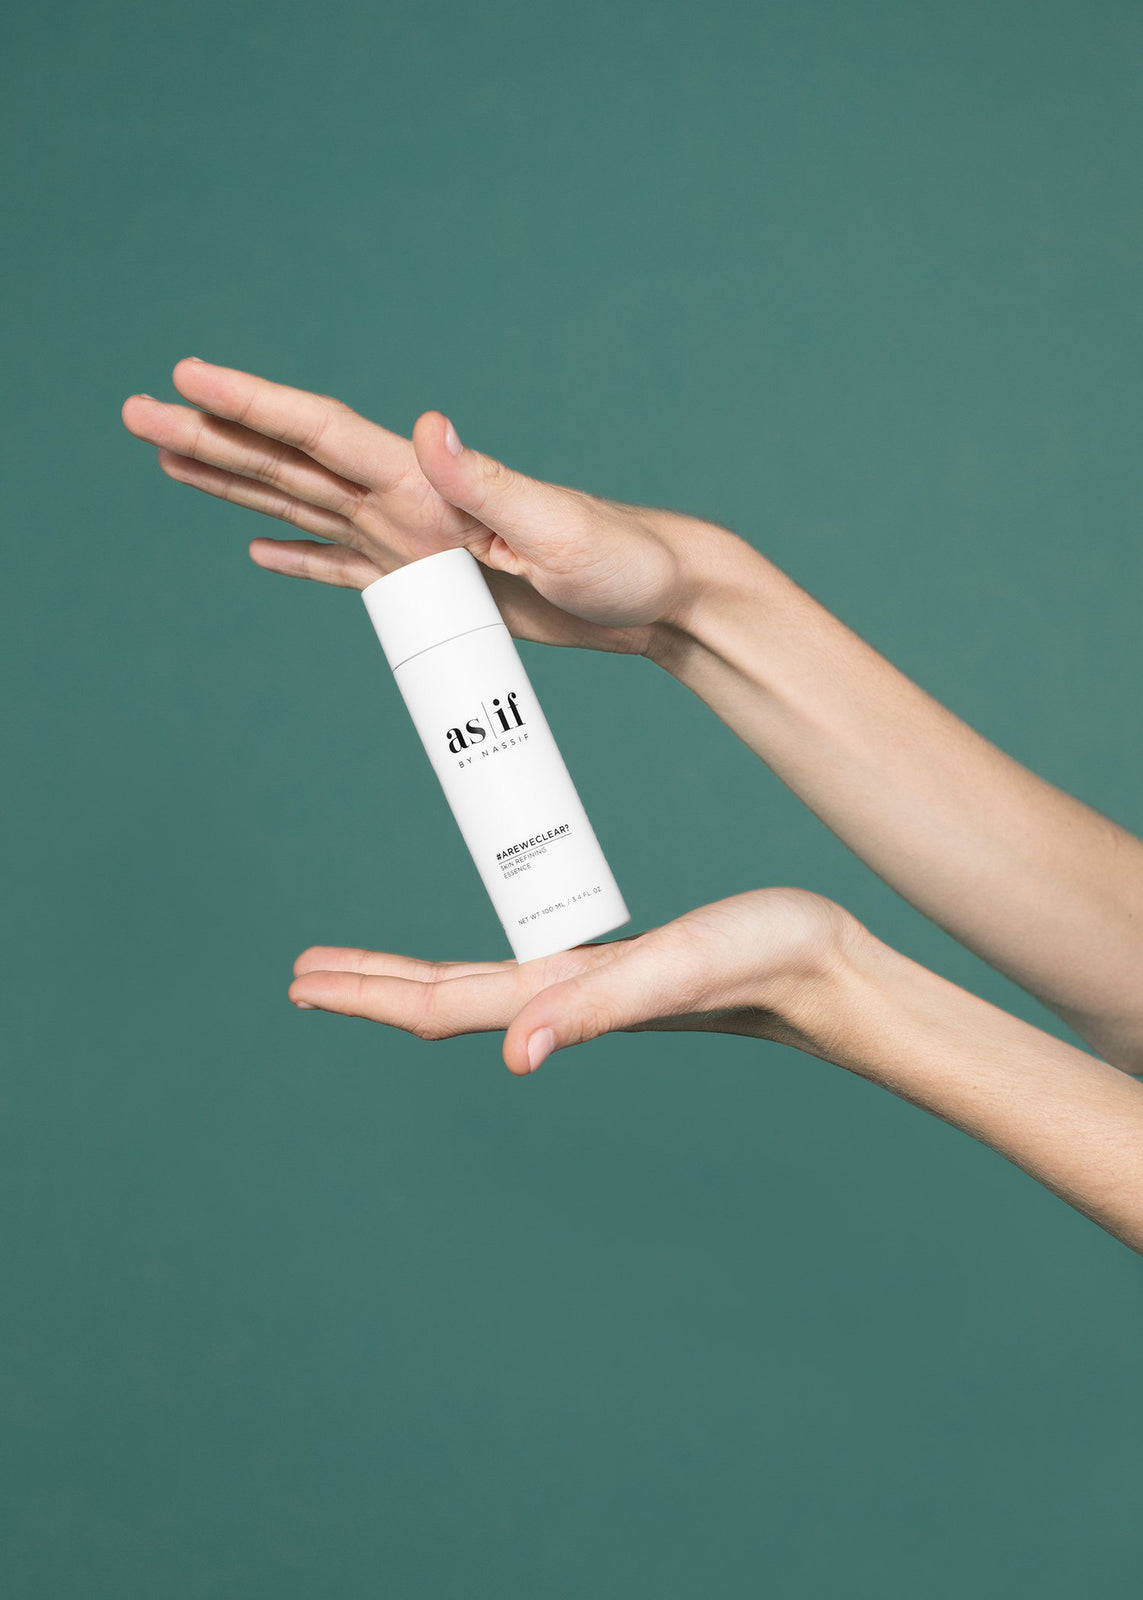 as|if by Nassif - #AREWECLEAR? SKIN REFINING ESSENCE